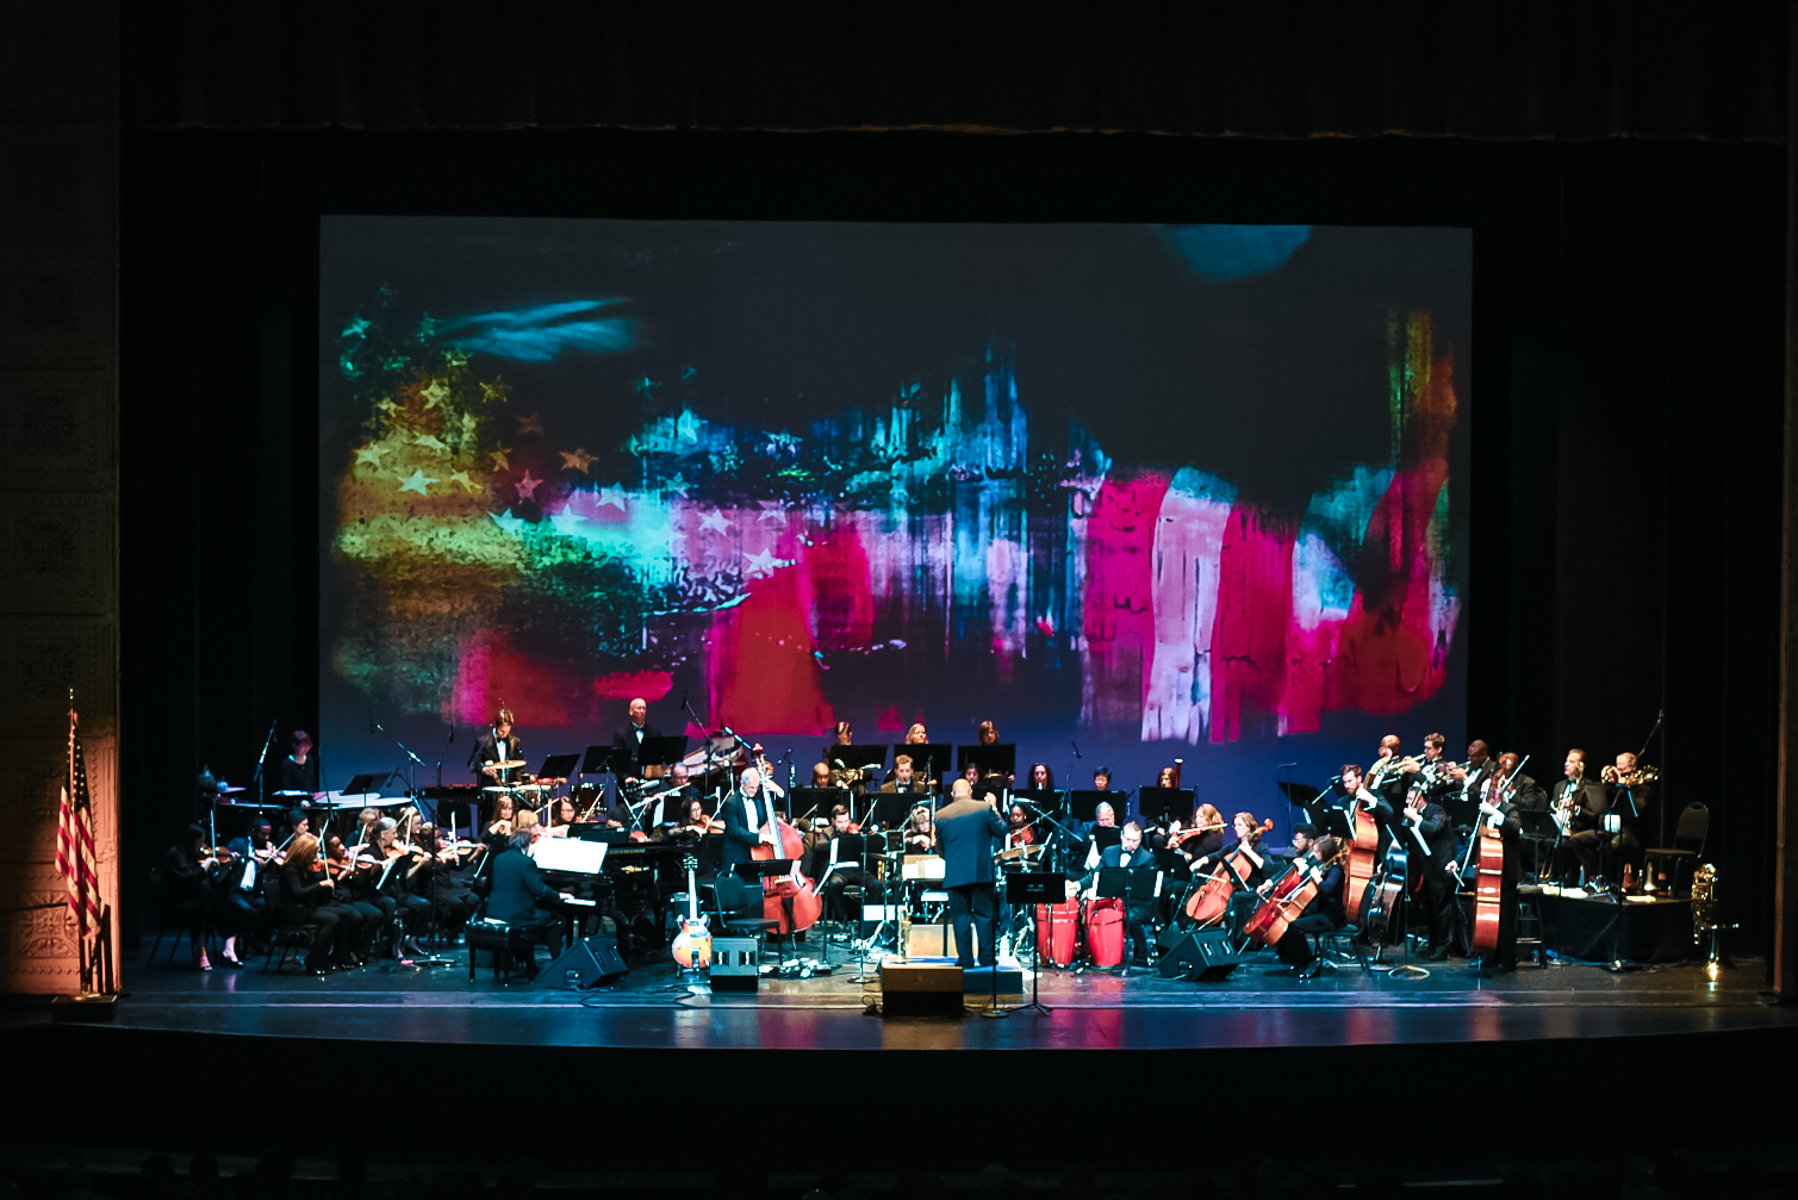 """Chicago Immigrant Stories"" will bring Chicago Jazz Philharmonic's artistry of cross-genre collaborations to meld with the musical culture of some of Chicago's most diverse neighborhoods and immigrant communities."